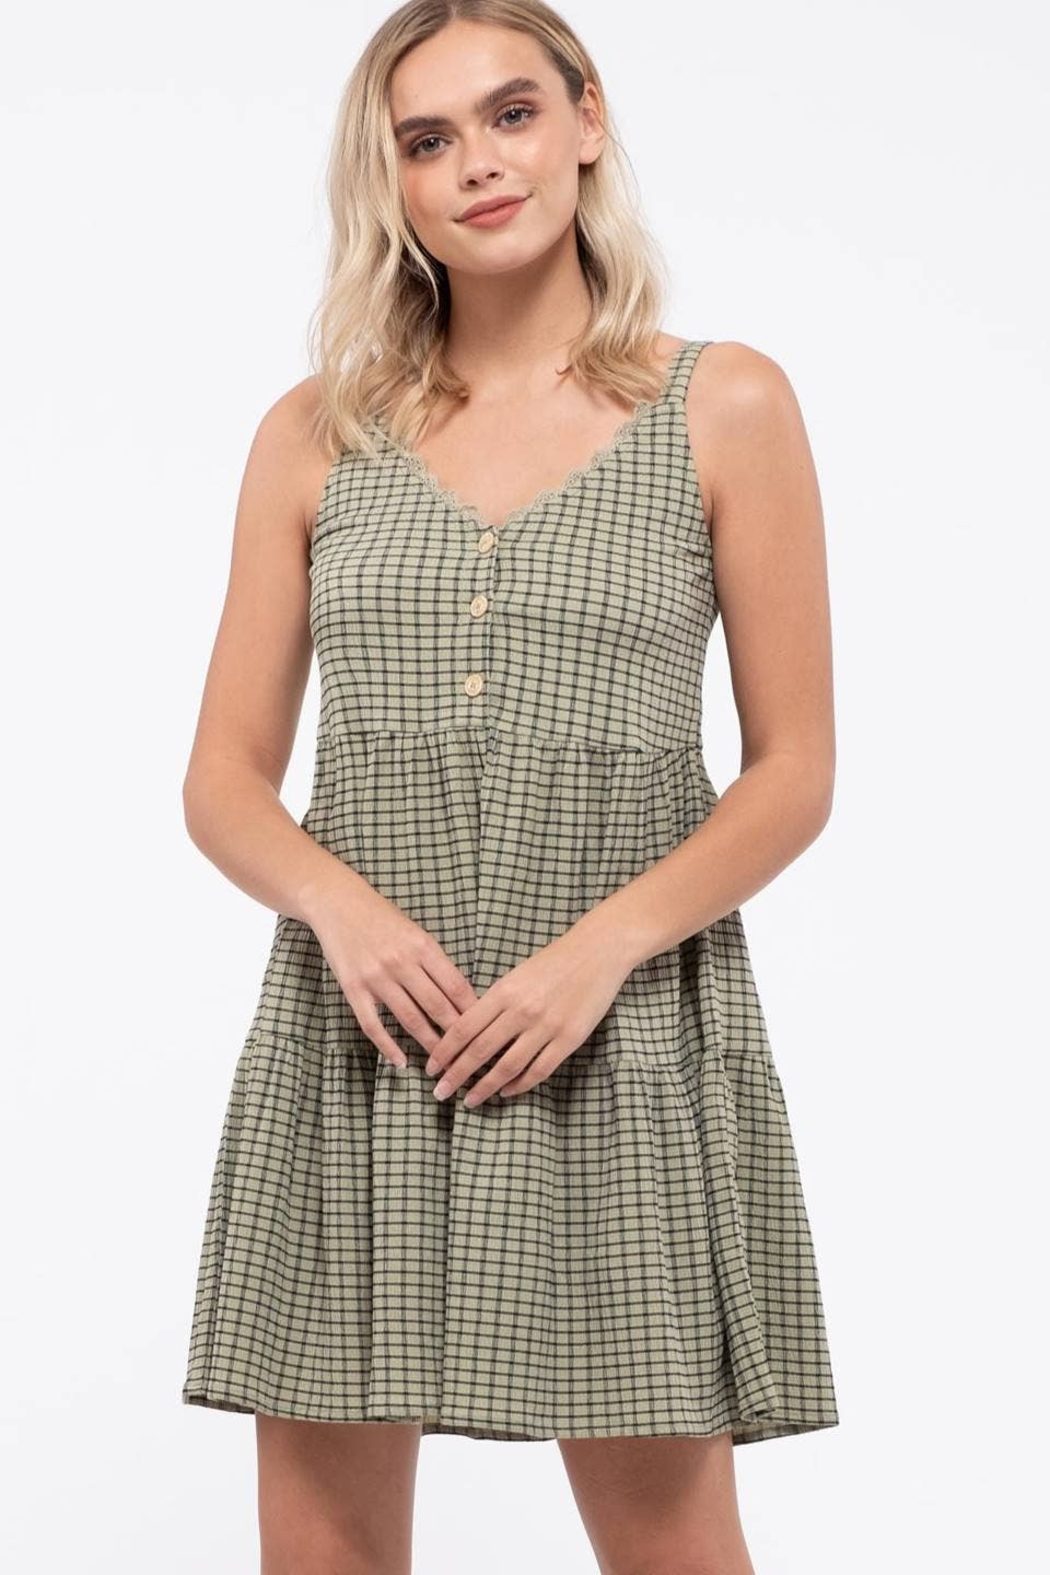 blu pepper  Grid Check Tiered Dress - Back Cropped Image